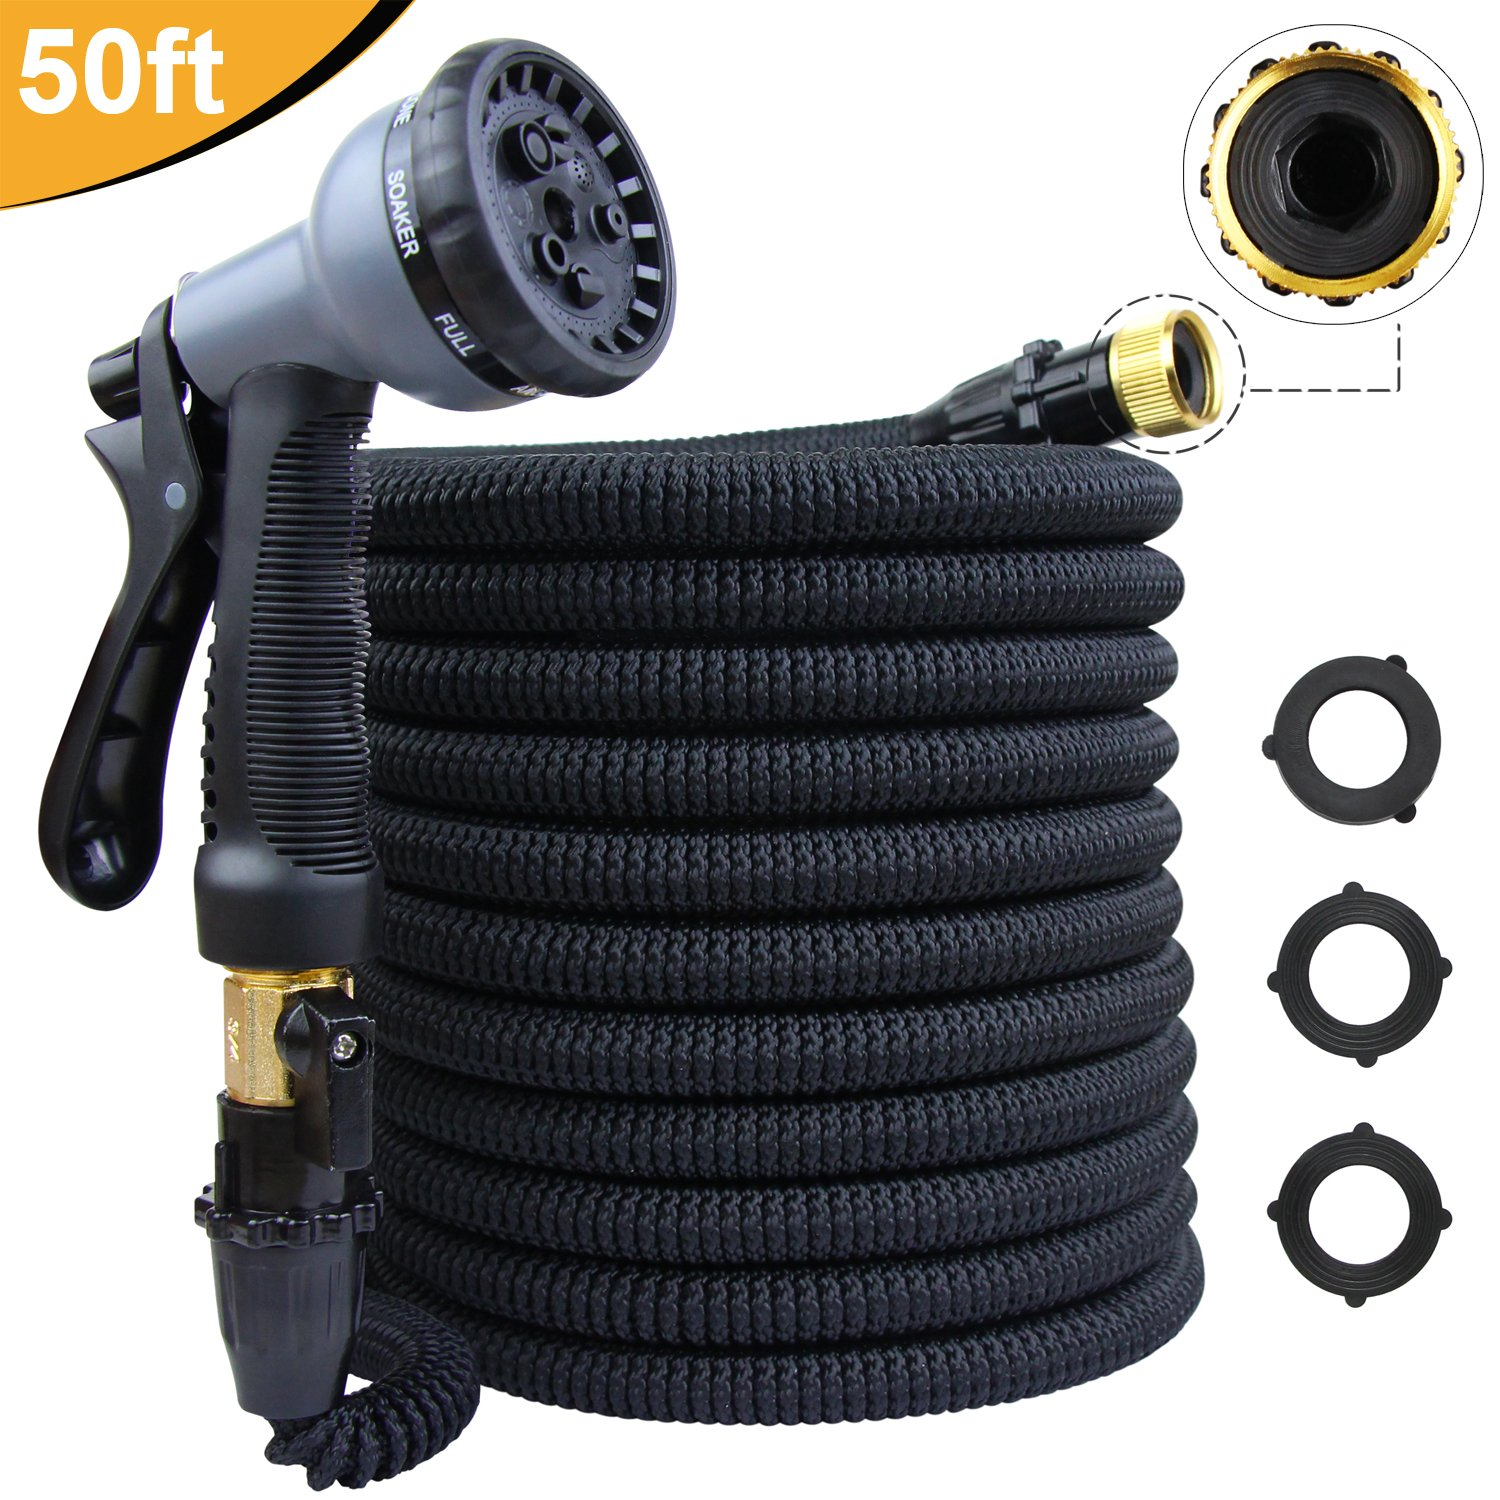 KYC 50ft Garden Expandable Water Hose Triple Latex Core 3/4'' Solid Brass Fittings Extra Strength Fabric Flexible with Metal 8 Function Spray Nozzle Pressure Washer Car Pets Wash